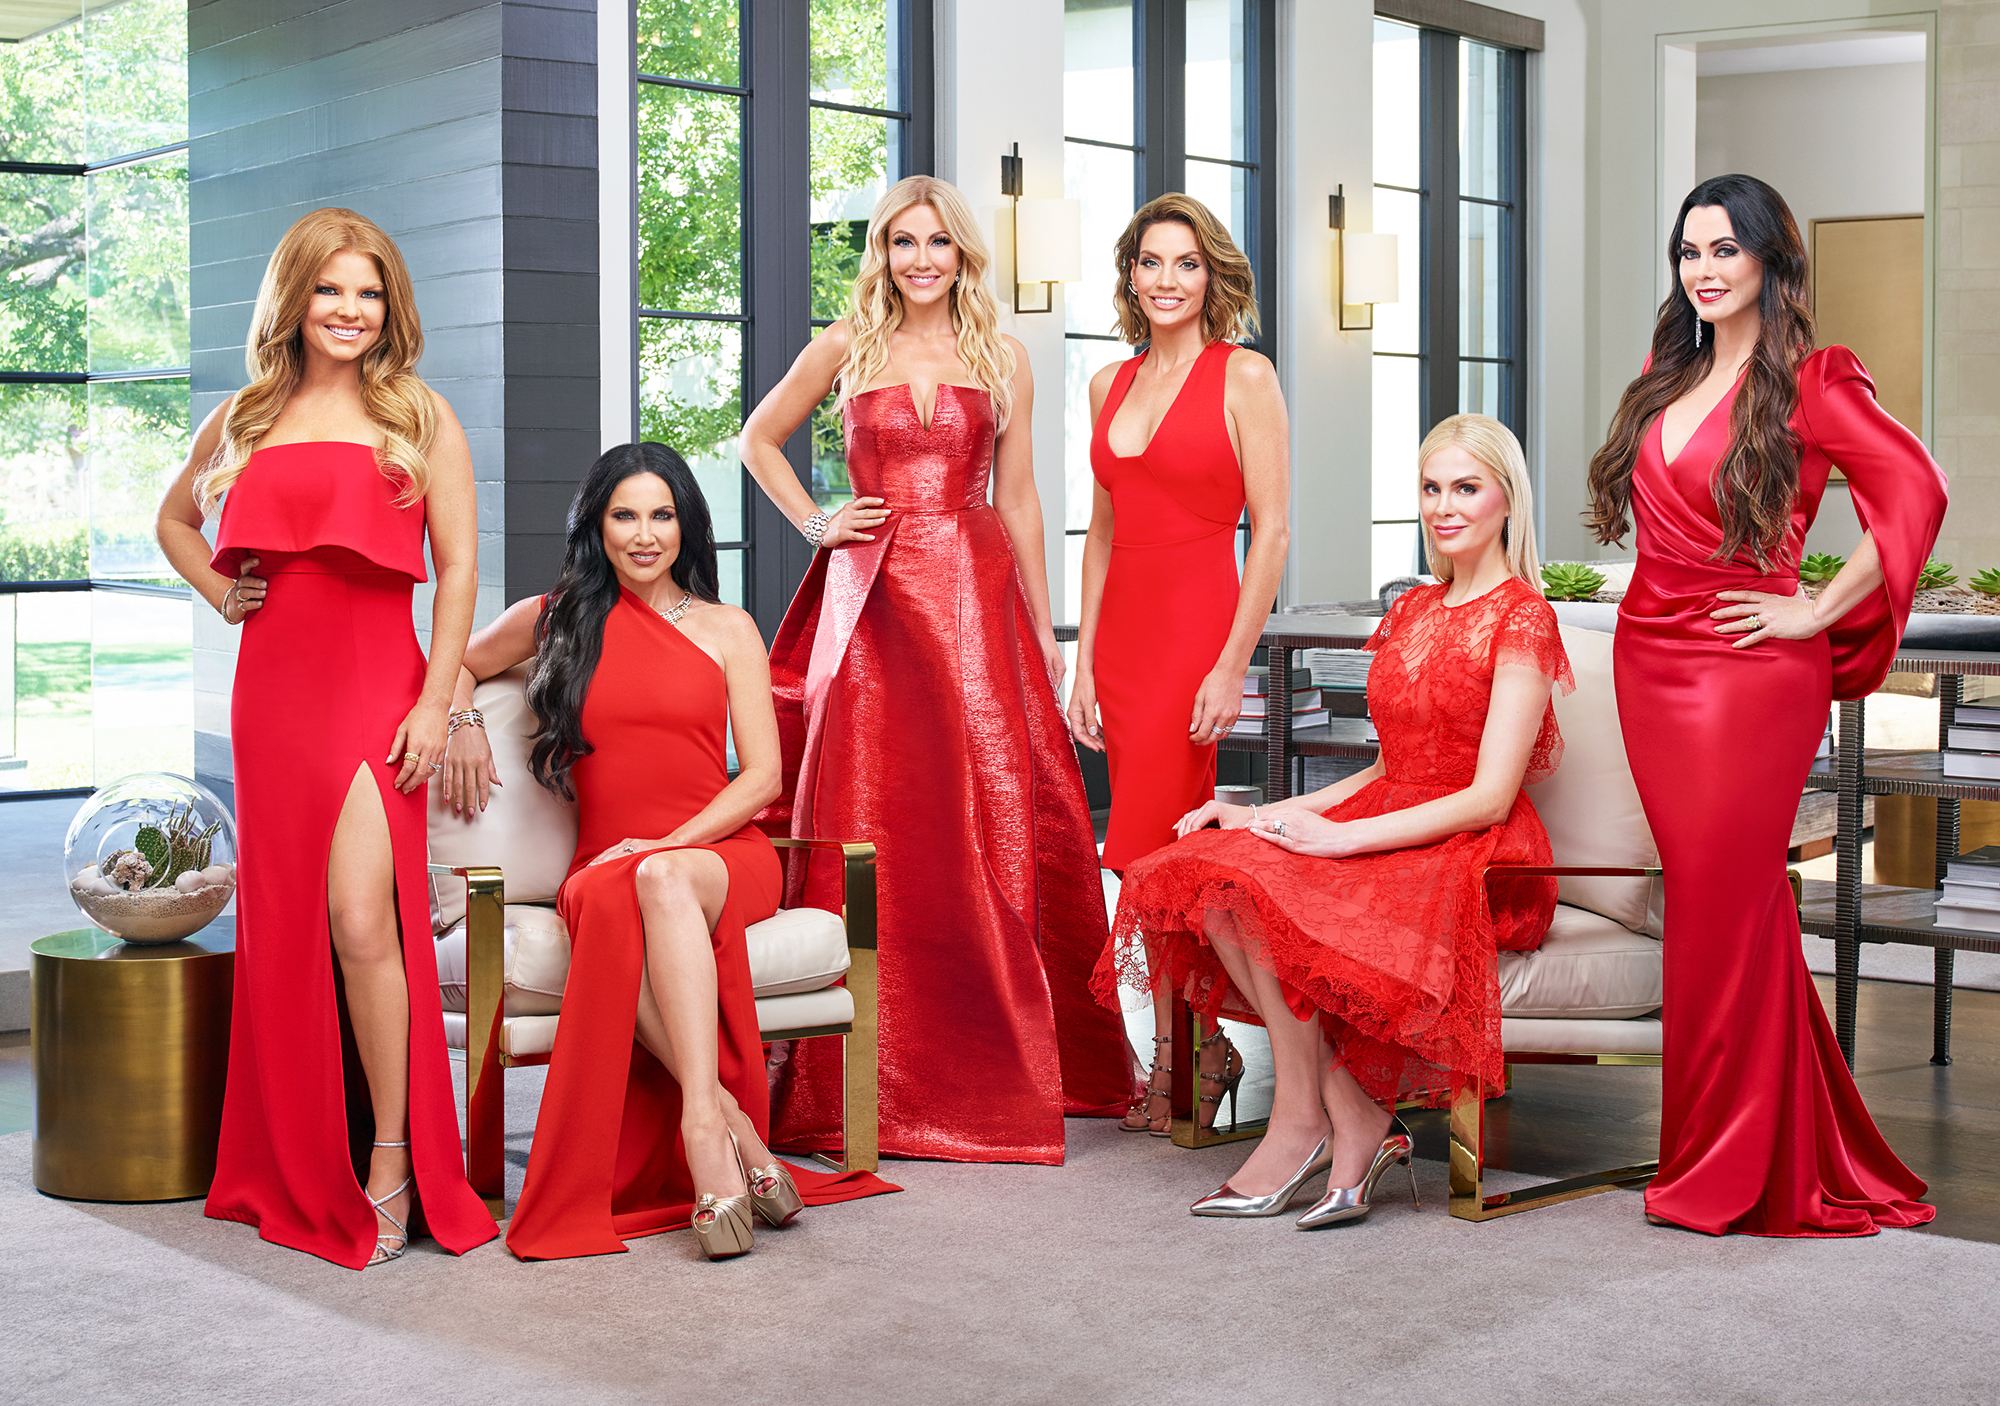 The Real Housewives of Dallas Cast LeeAnne Locken D'Andra Simmons Feud